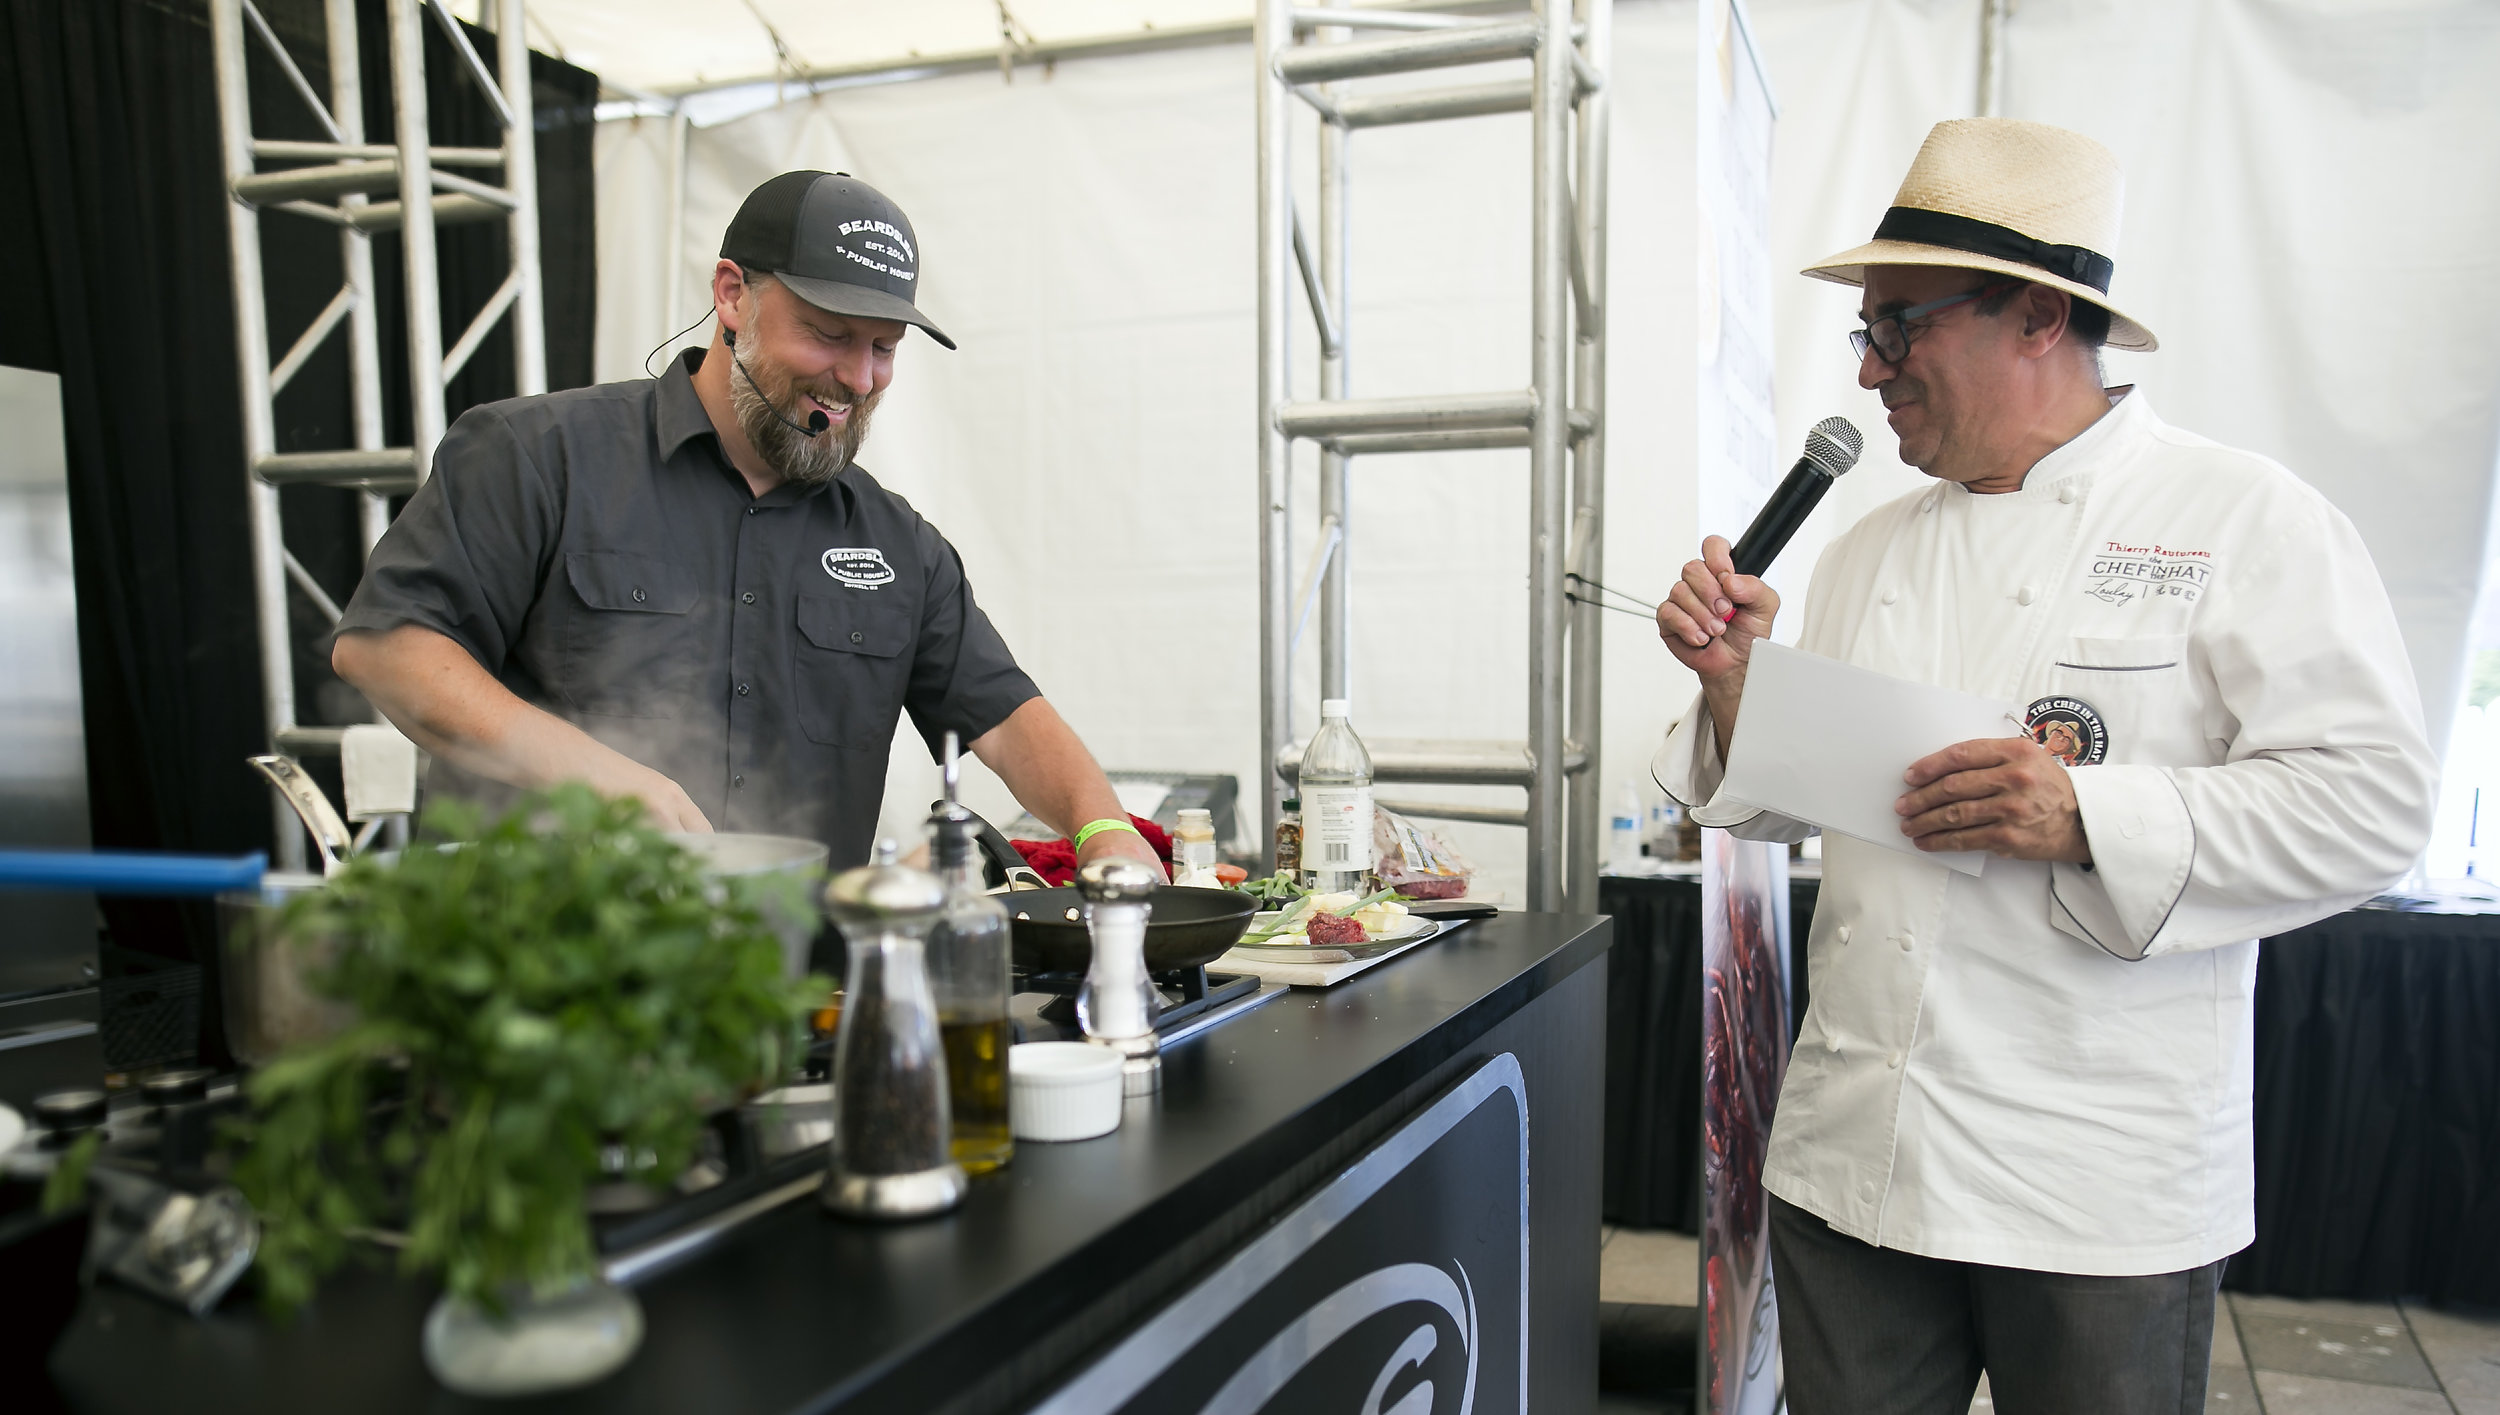 Chef Thierry and Chef Jed_01.jpg